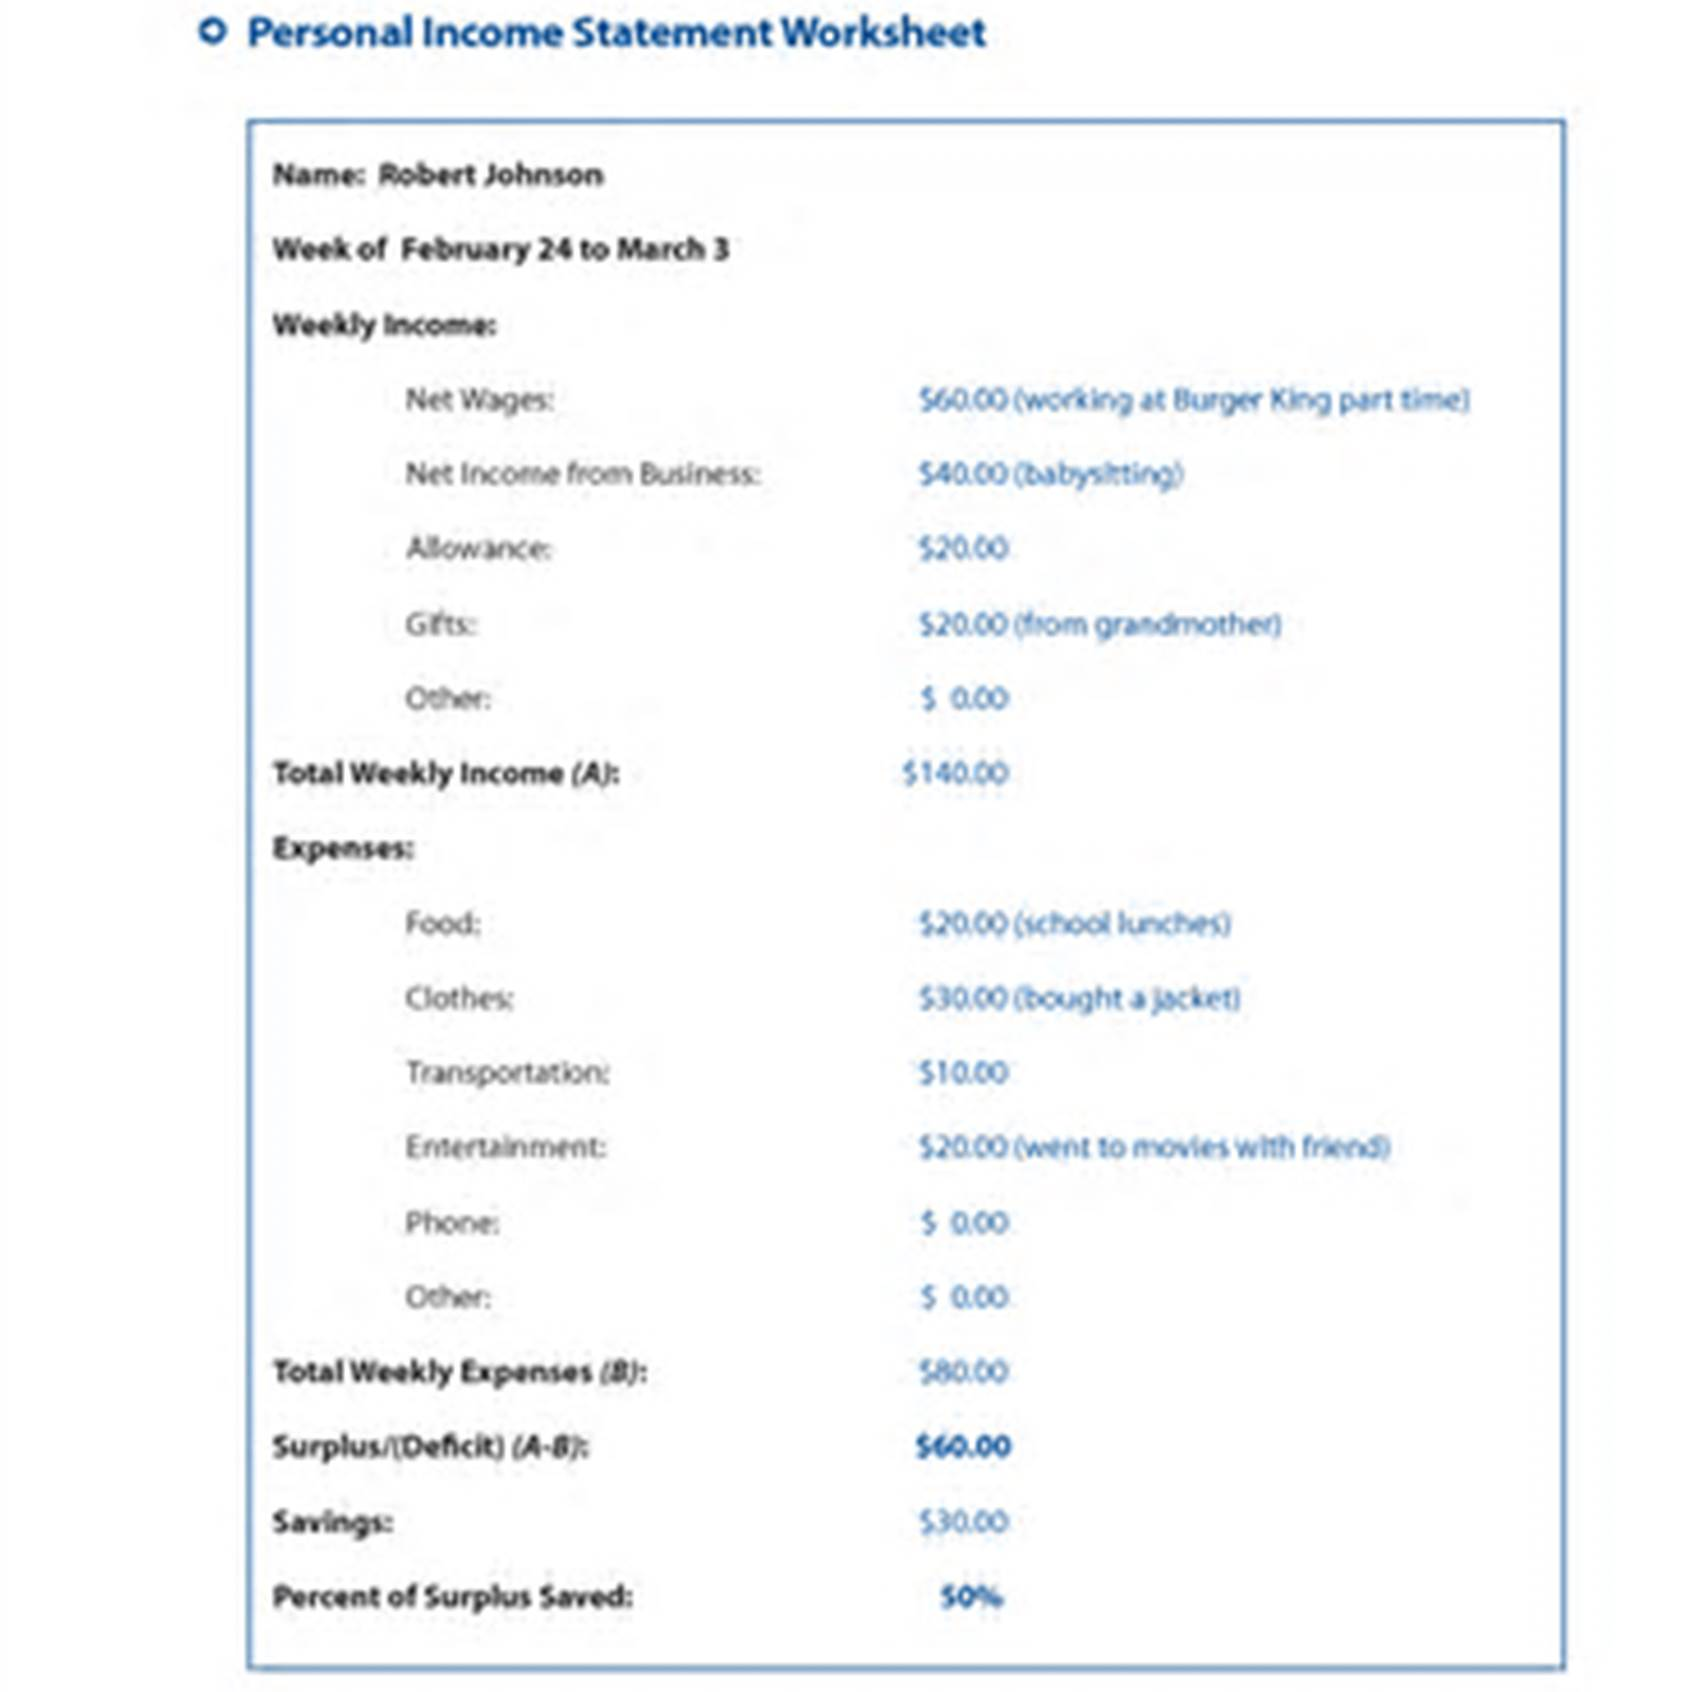 Basic Income Statement Worksheet